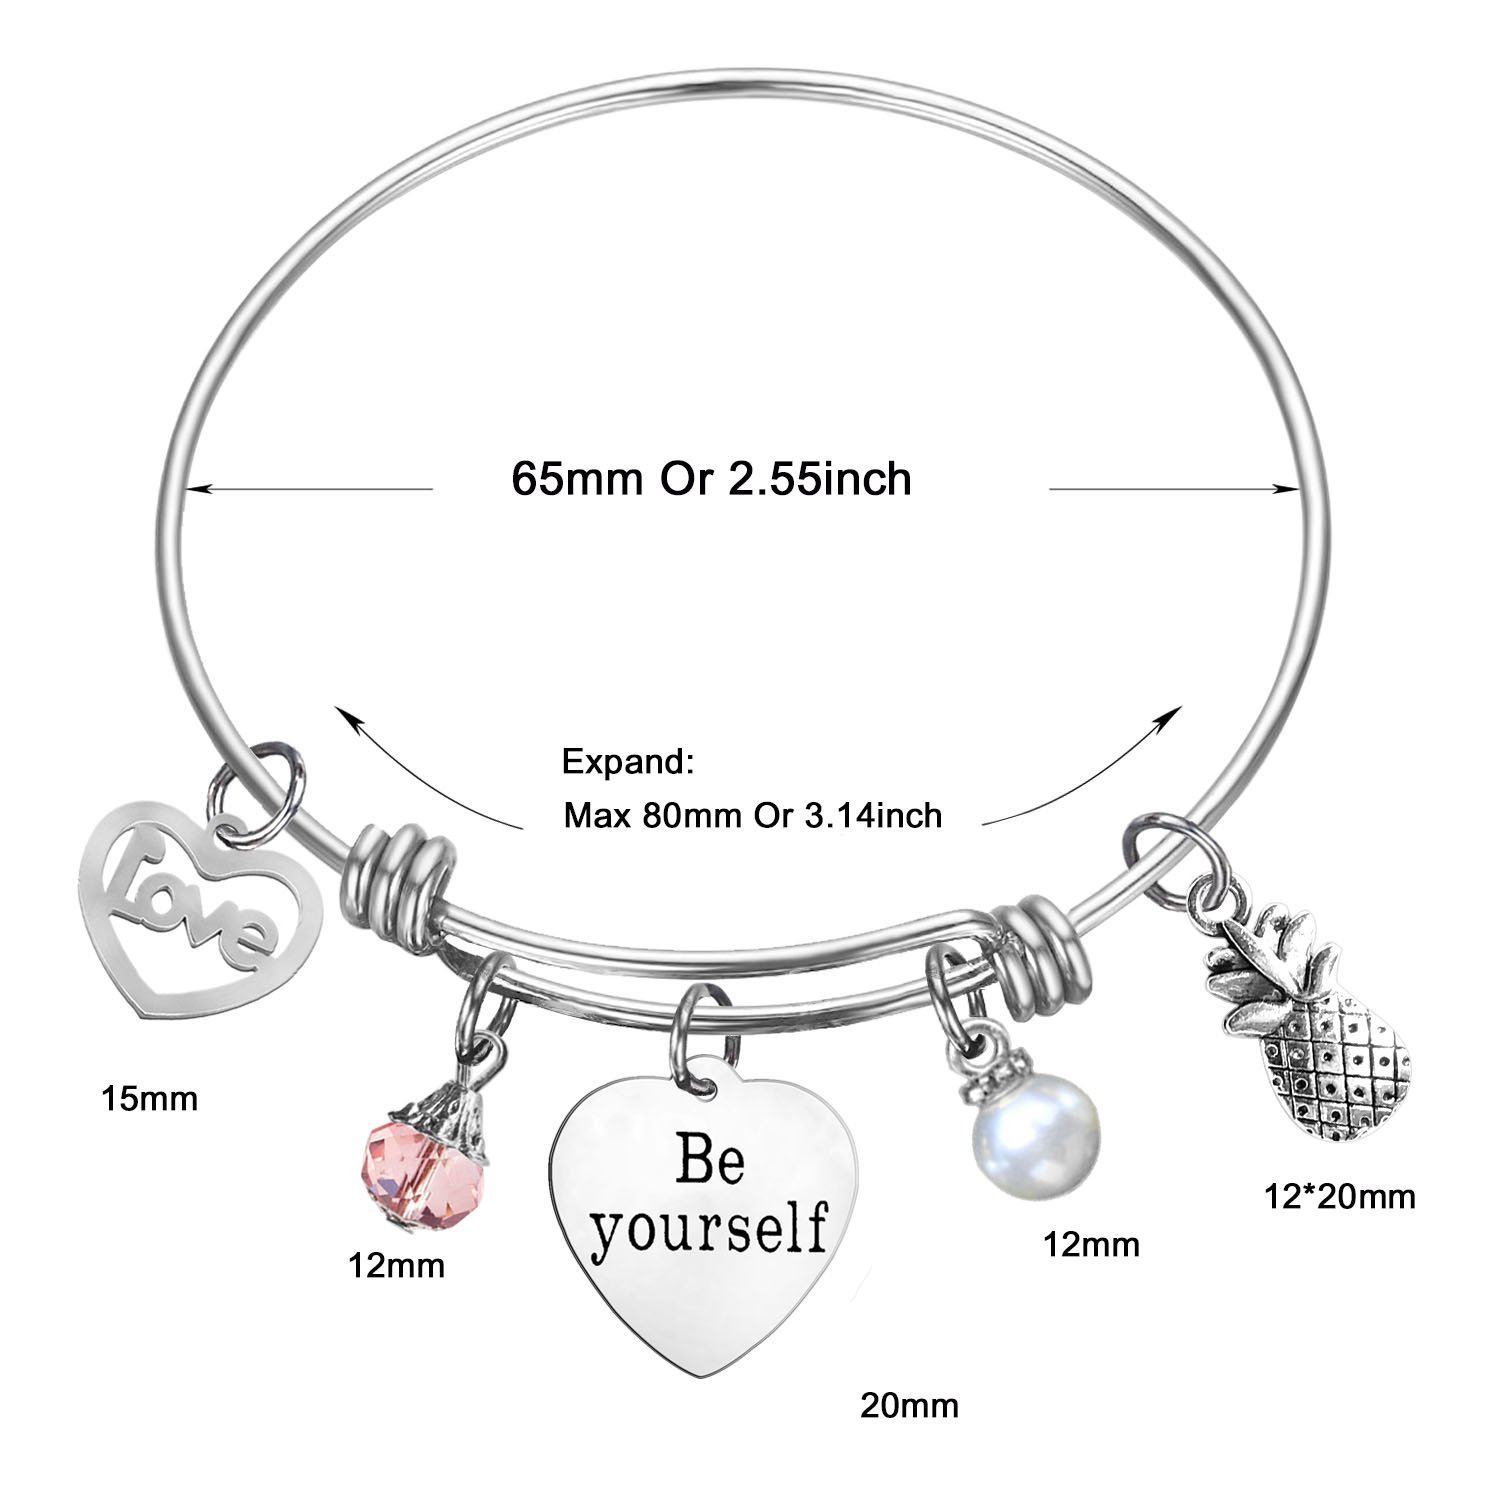 SOOFUN Birthday Gifts for Women Girls,Be Yourself Inspirational Bangle Bracelet